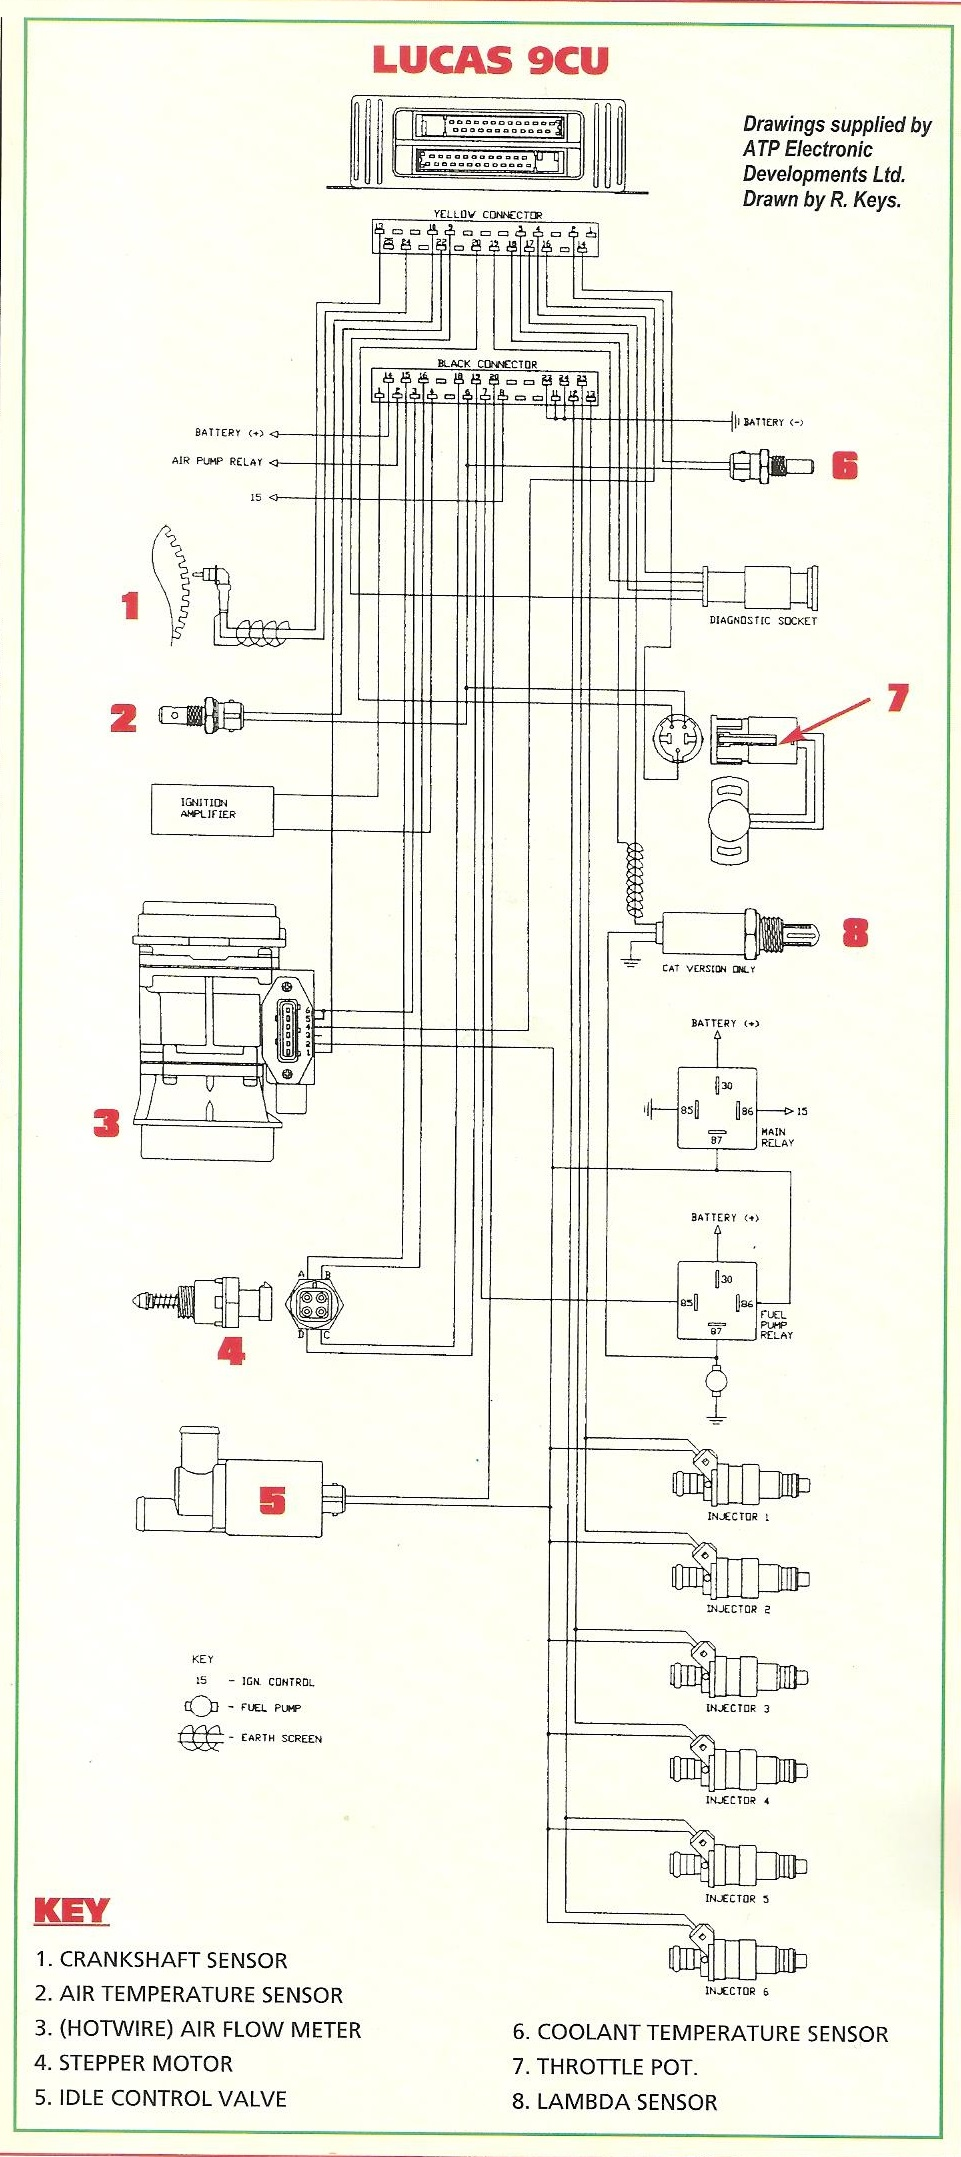 Ecu wiring schematic xj40 on 1990 jaguar xjs wiring diagram pdf 1990 Ford Thunderbird Wiring Diagram Wiring Diagrams 1998 Jaguar XJ8